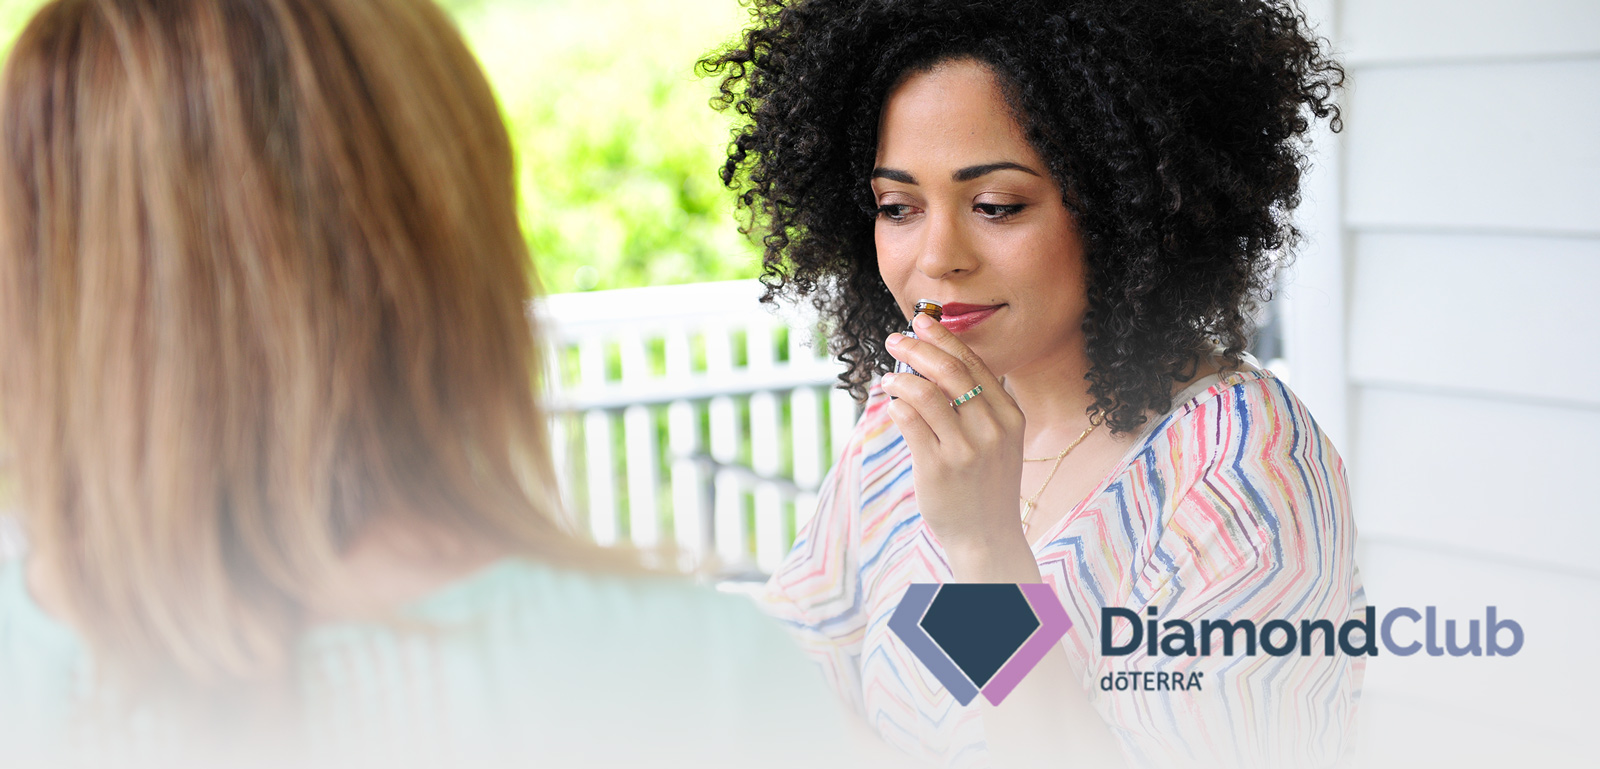 What are the benefits of doTERRA Diamond Club? Woman outside on porch smelling essential oil bottle.